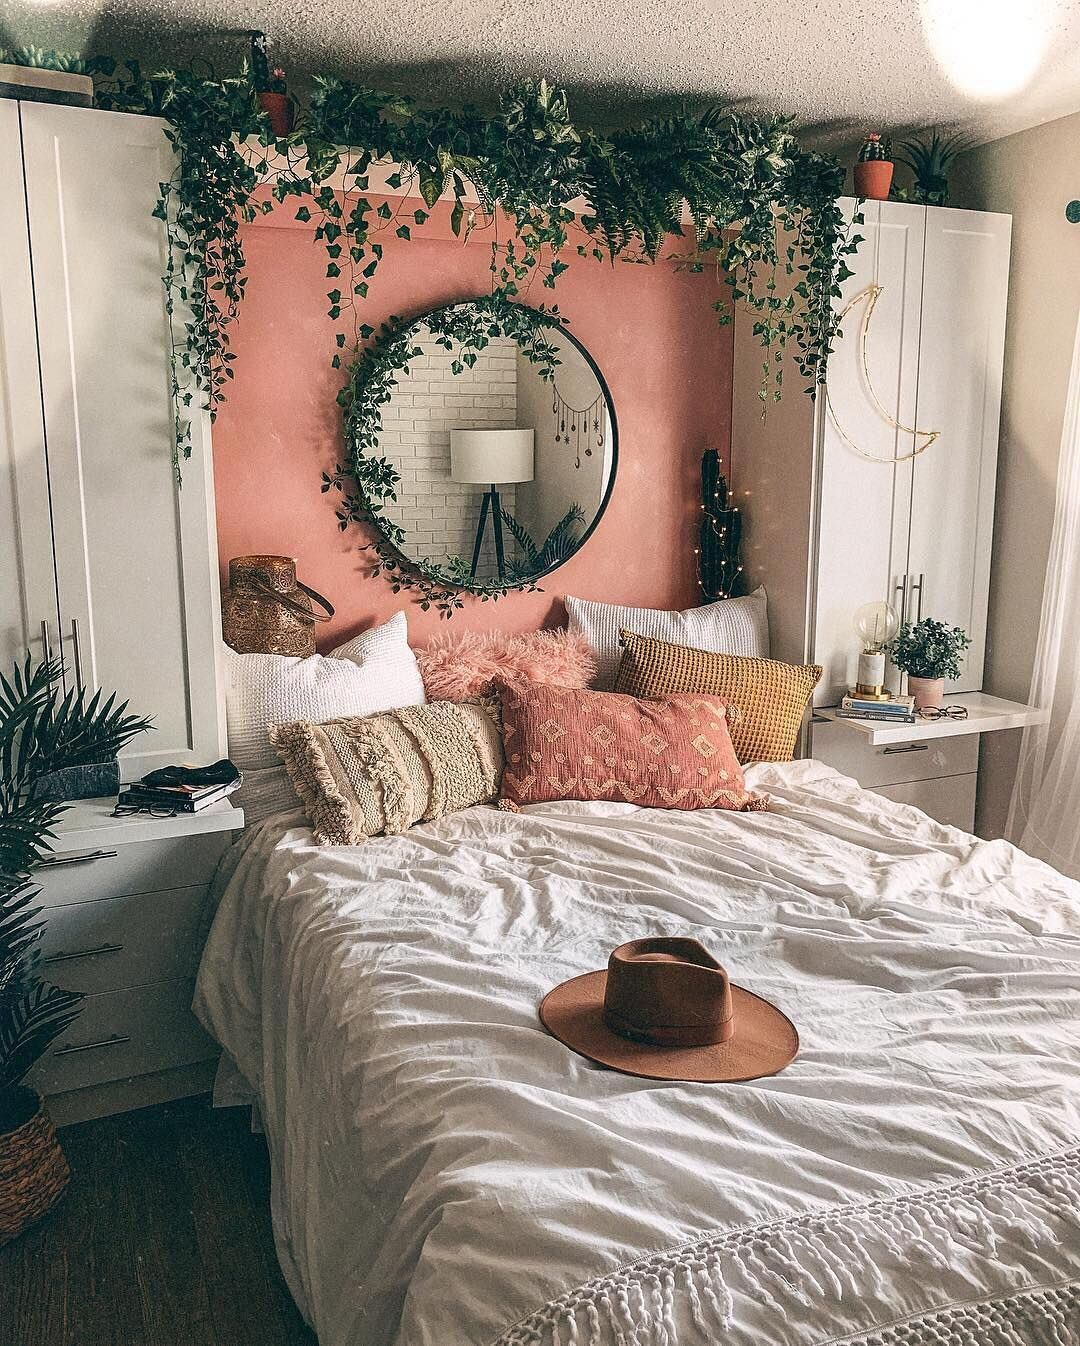 "Apartment Therapy on Instagram: ""New obsession: wrapping a mirror in plants �(Image: @nicoleashley)"""